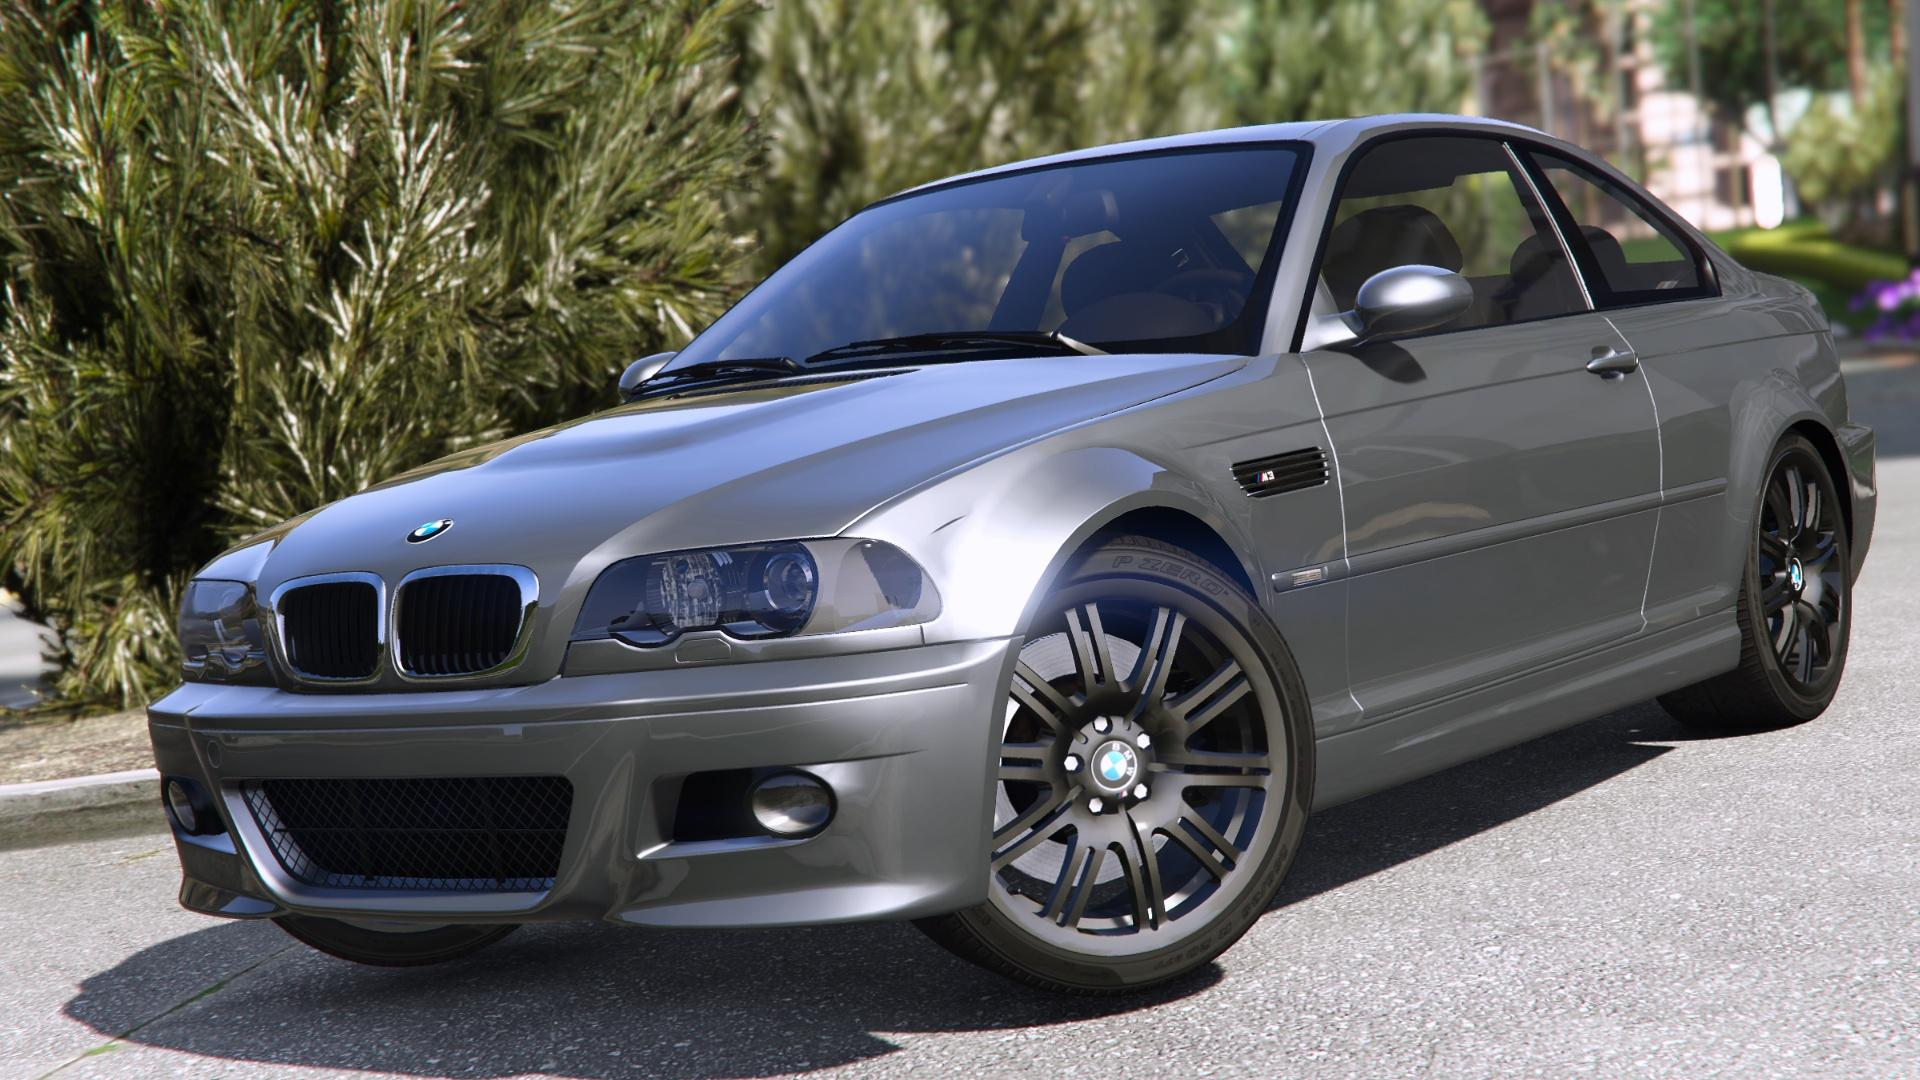 bmw m3 e46 2005 add on replace tuning gta5. Black Bedroom Furniture Sets. Home Design Ideas